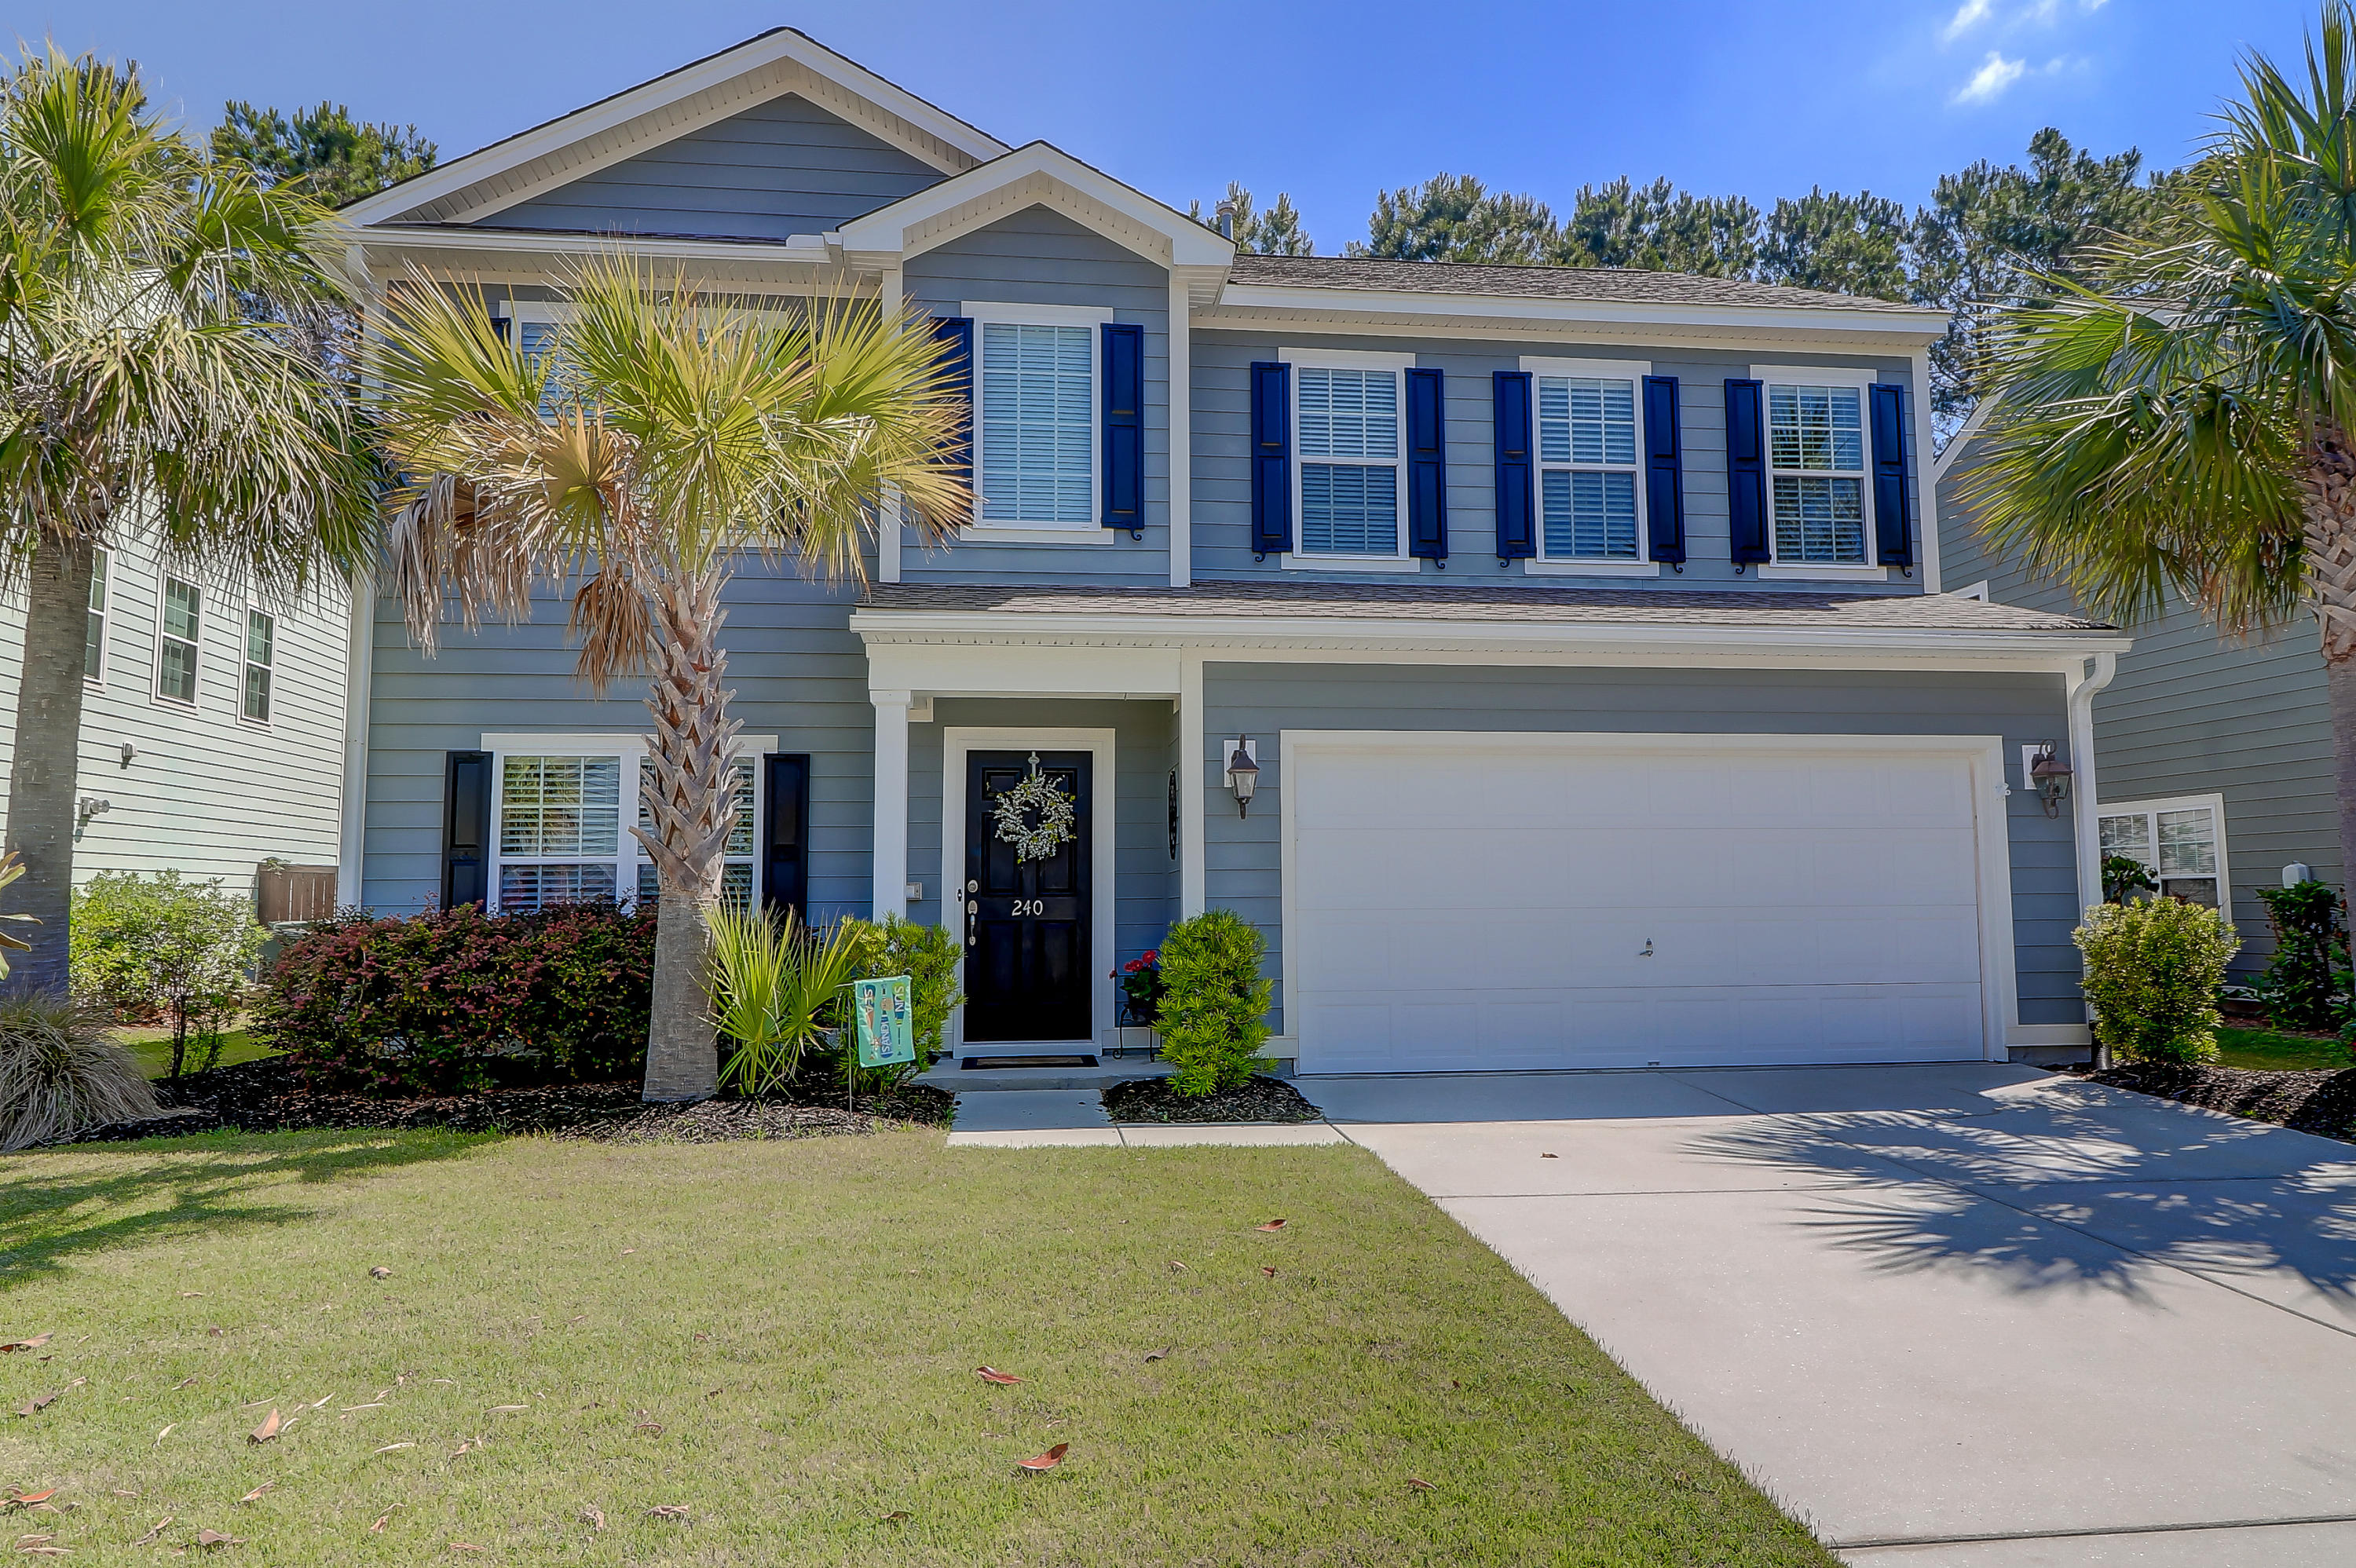 240 Nelliefield Creek Drive Wando, SC 29492